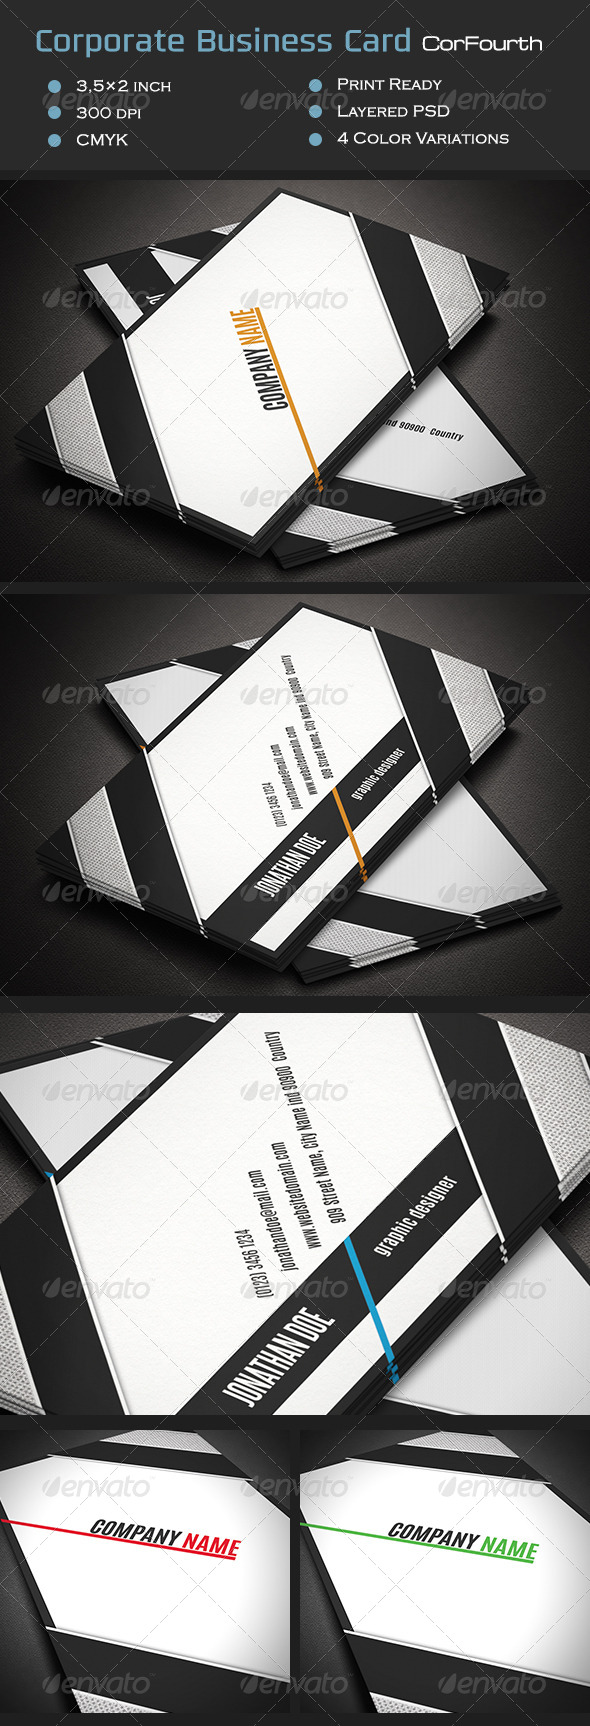 Corporate Business Card CorFourth - Corporate Business Cards